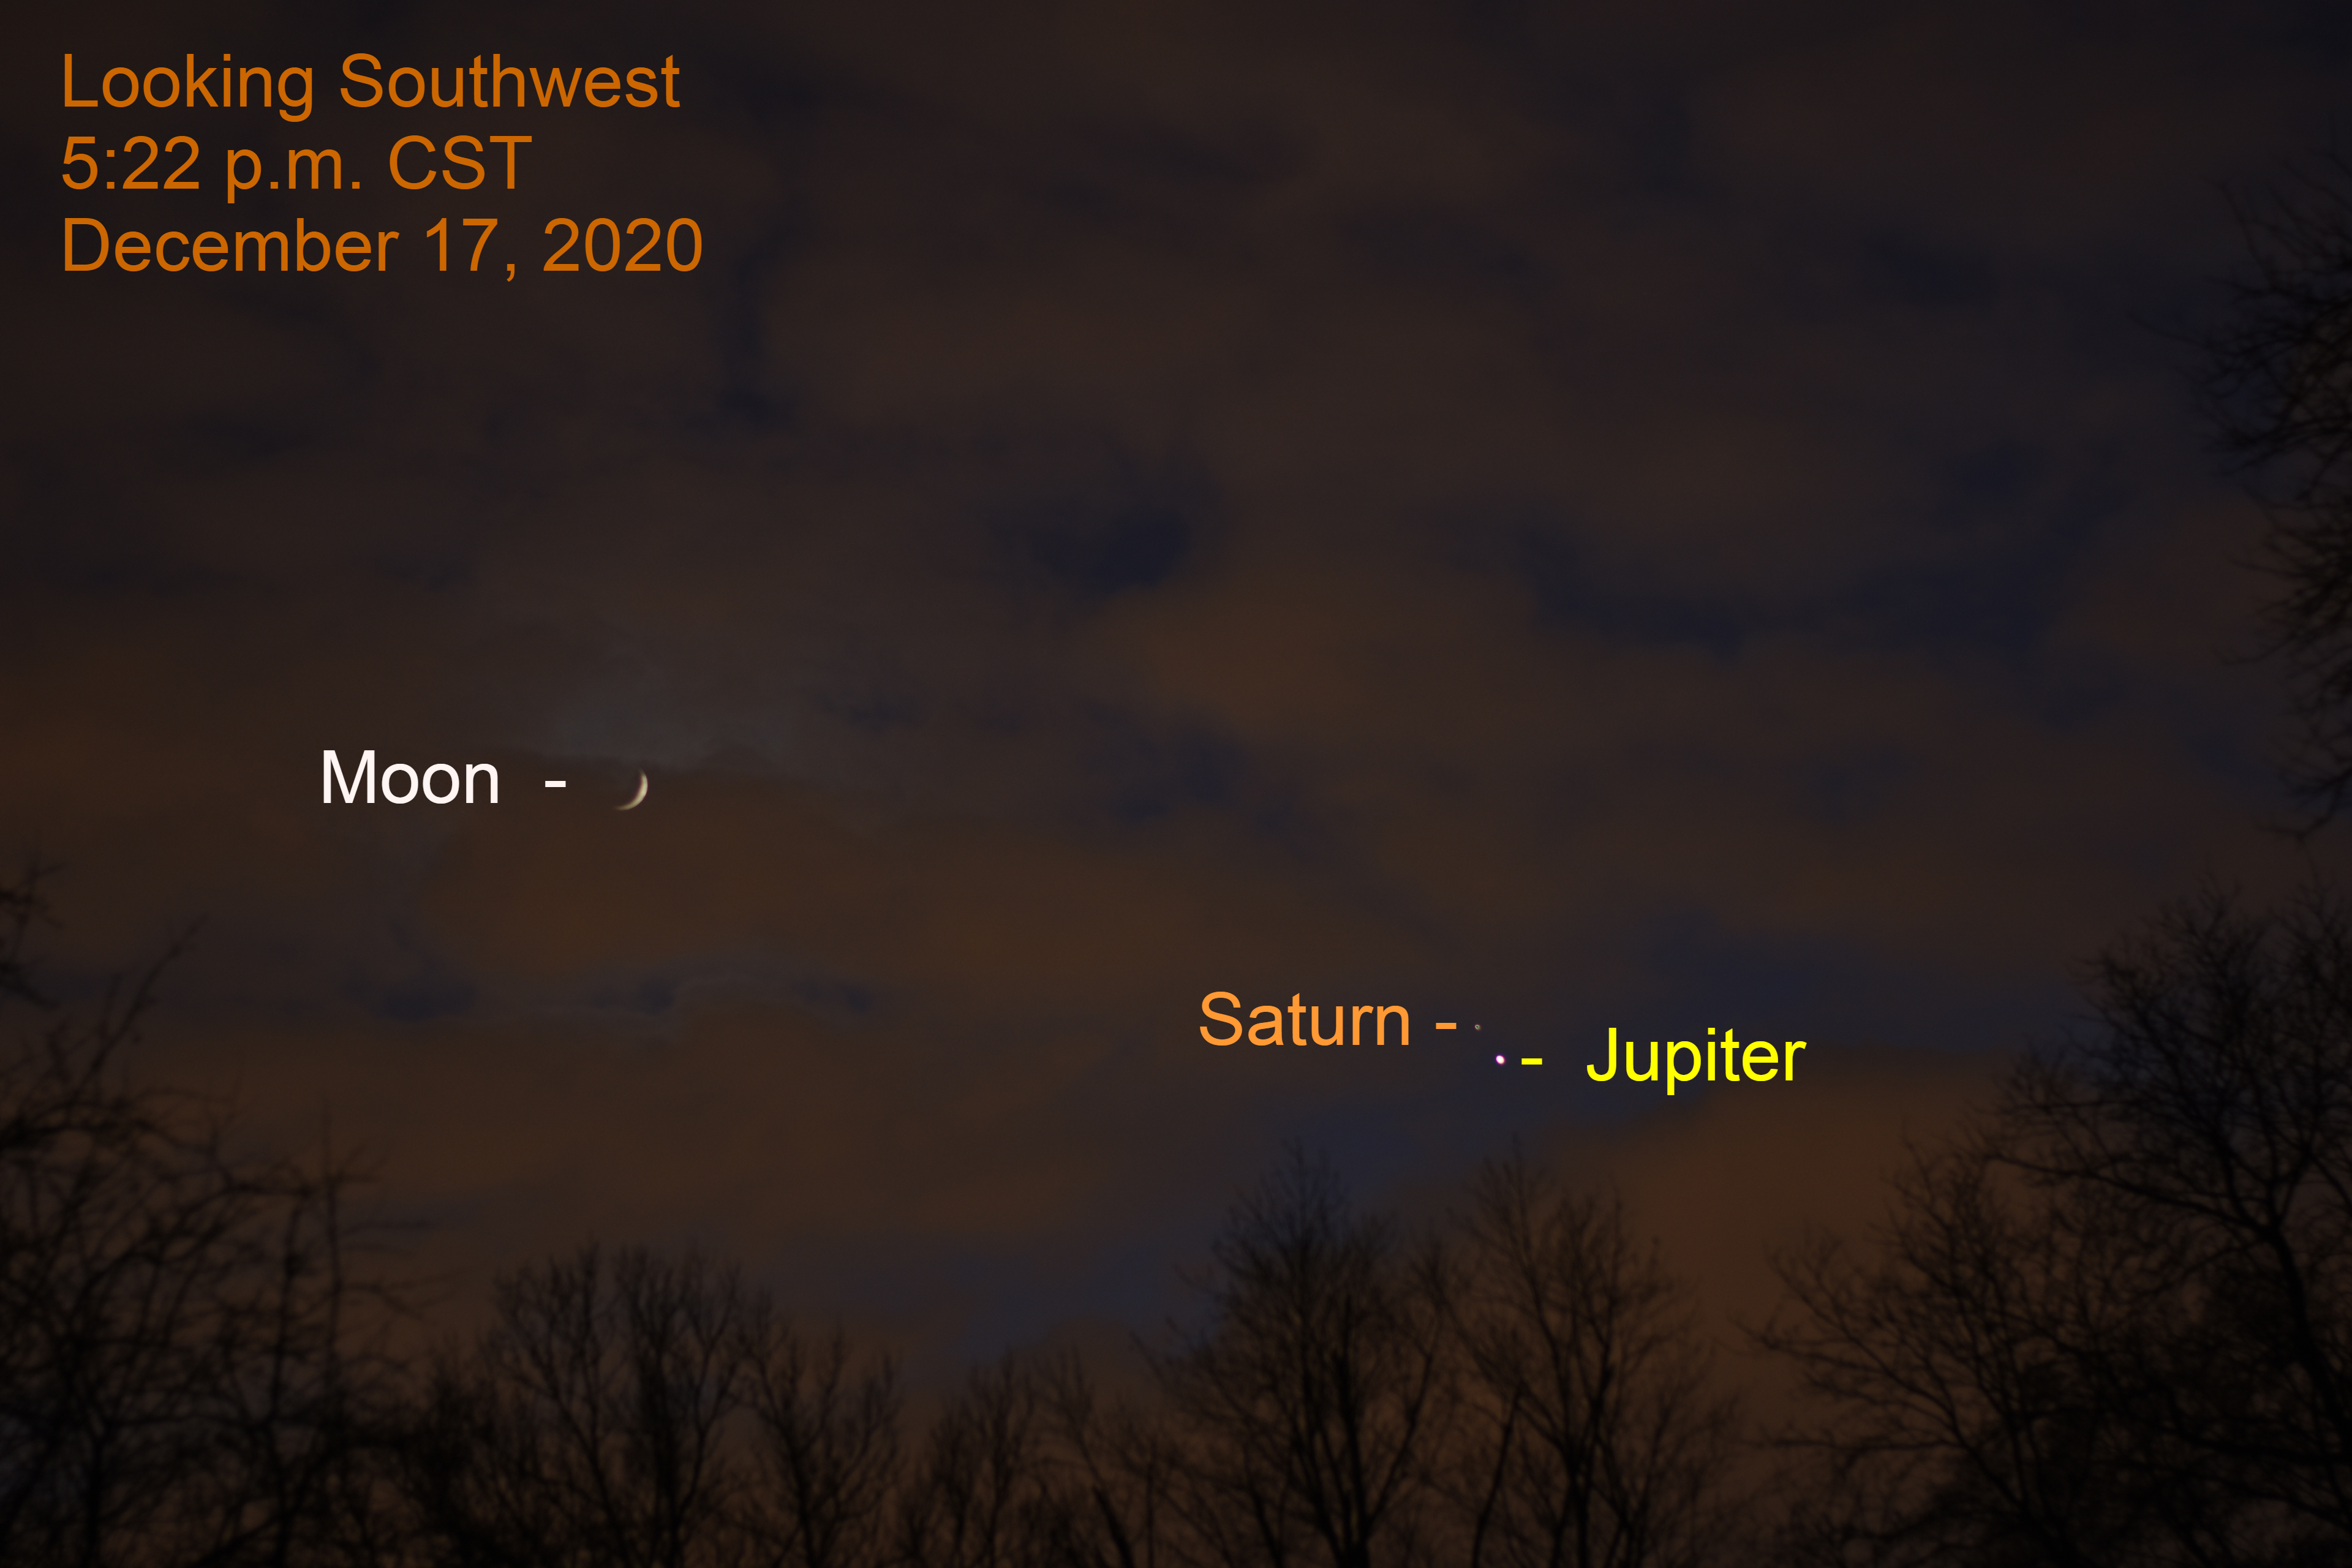 2020, December 17: Jupiter, Saturn, and the crescent moon.